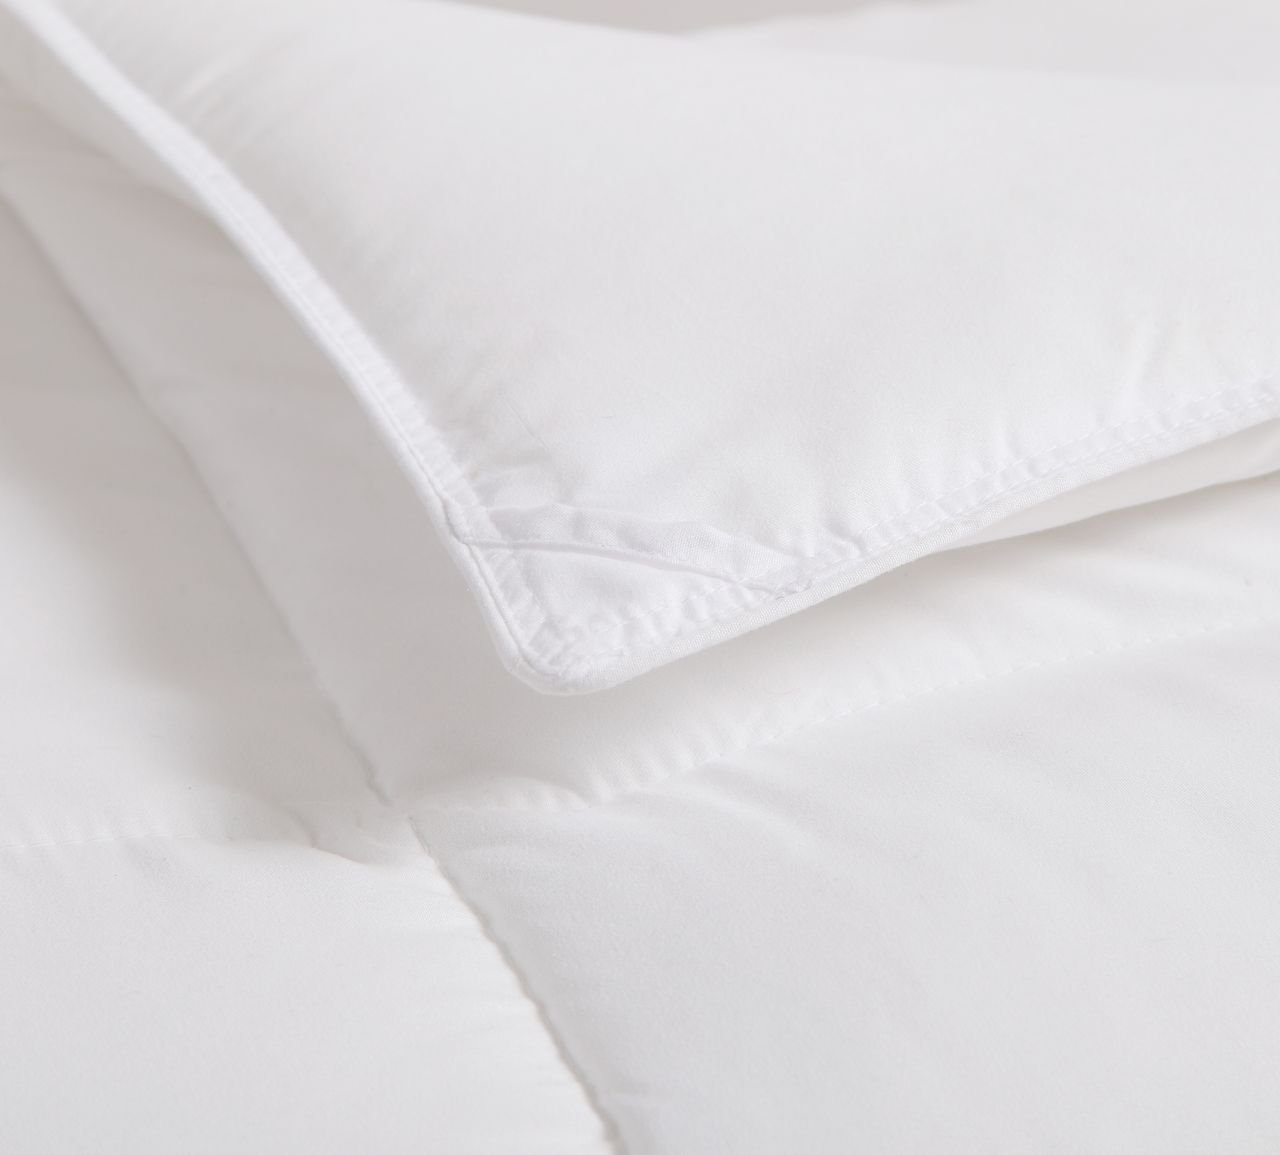 KingLinen White Down Alternative Comforter Duvet Insert Twin da120501-t